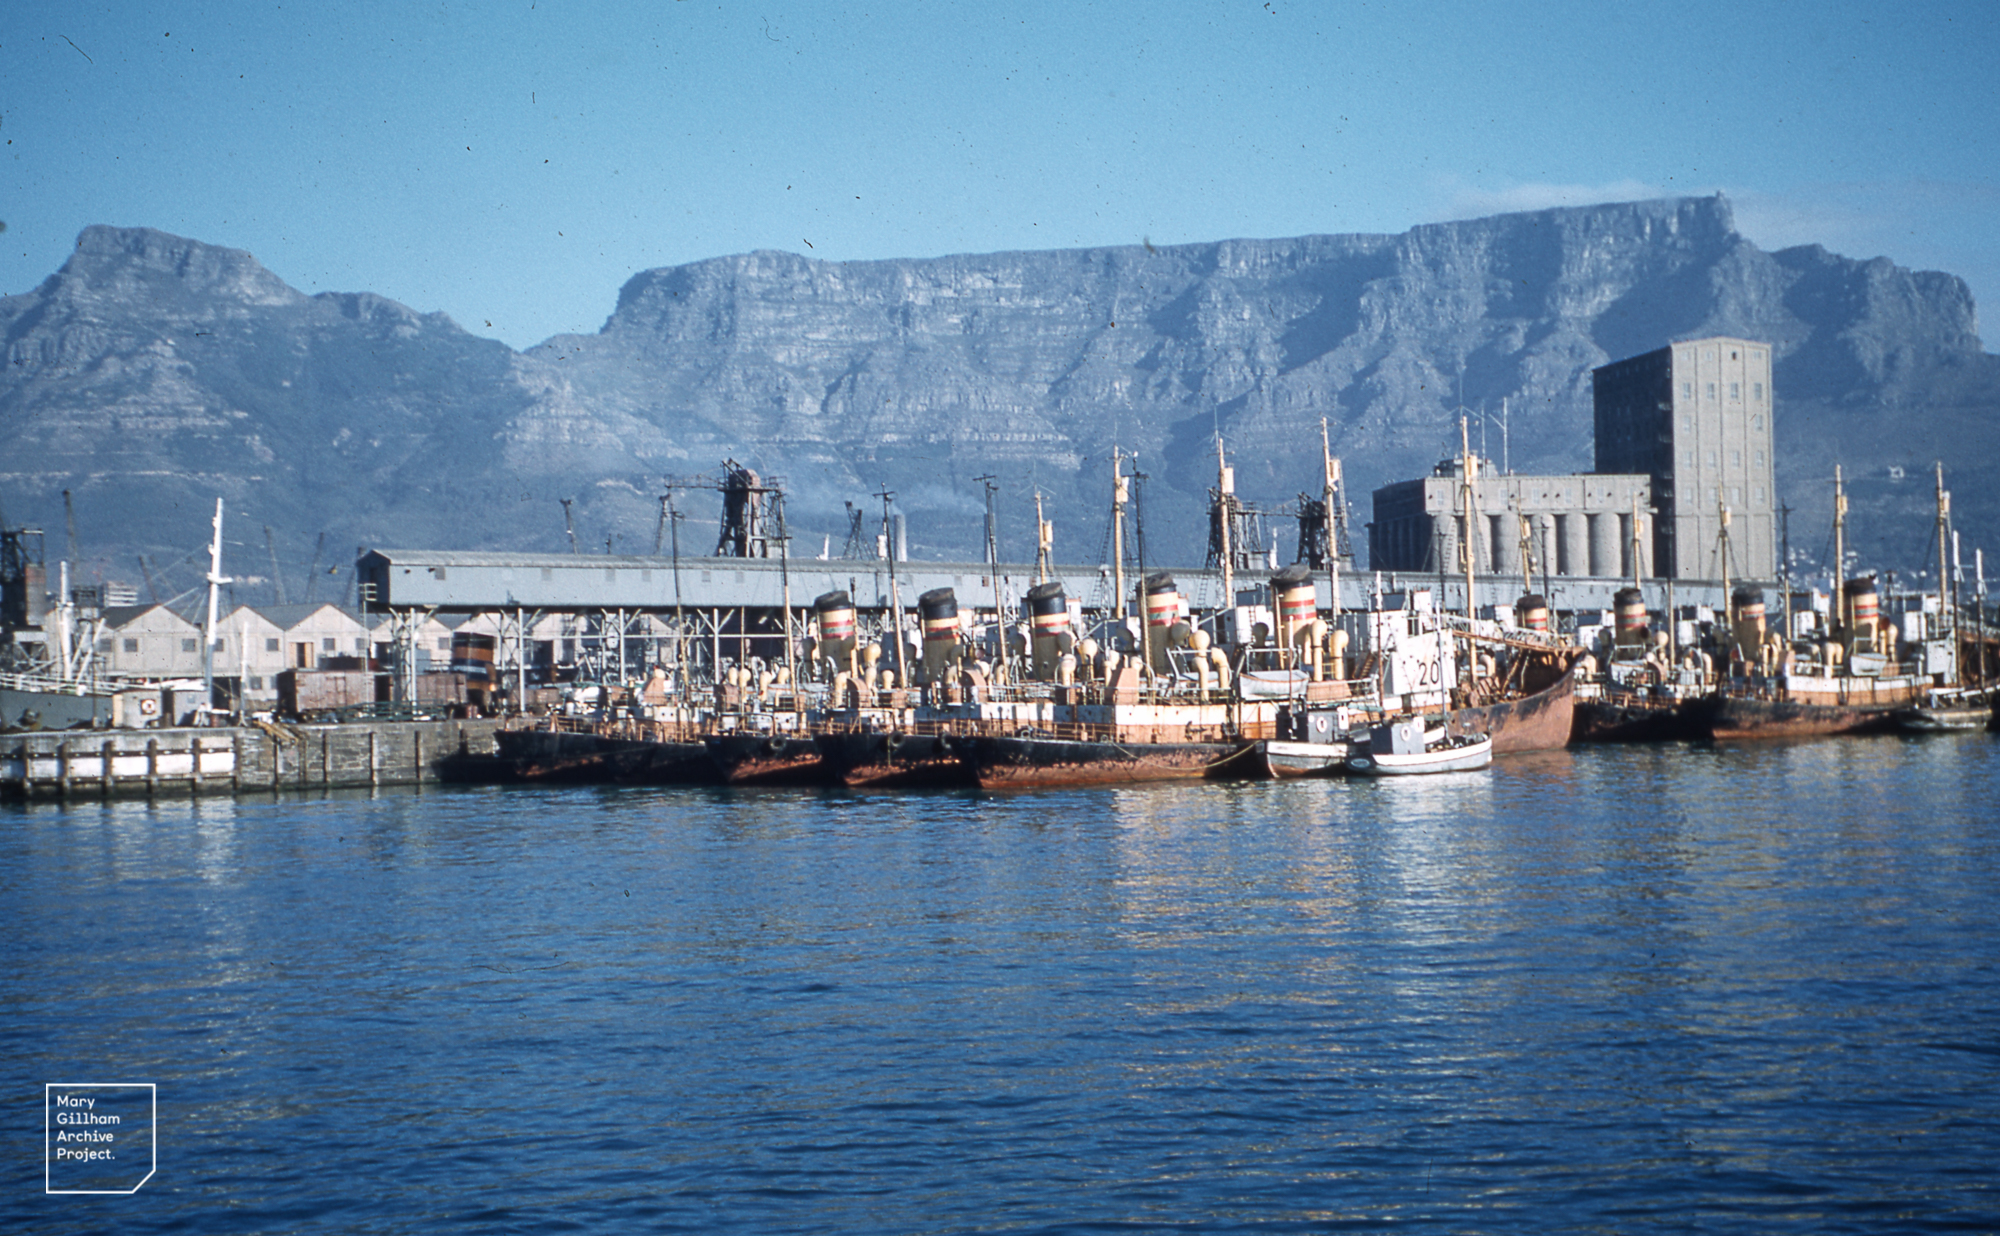 Dutch whalers, wheat silos. Table Mountain, 1960